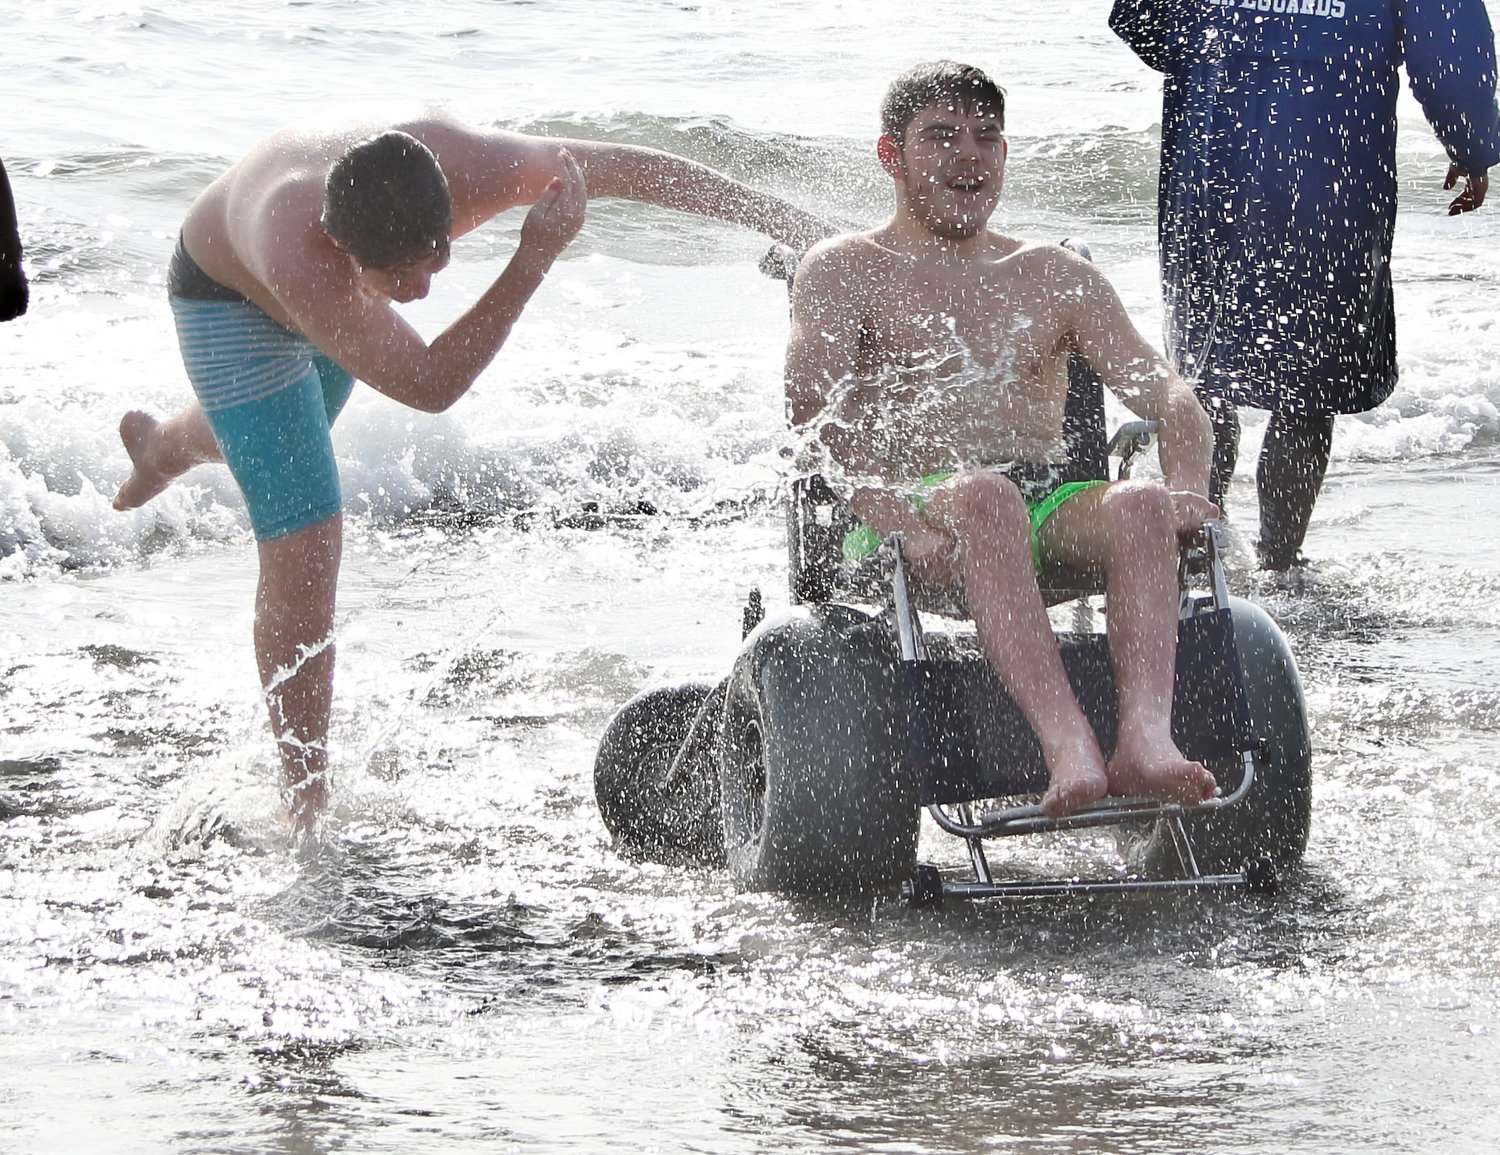 Long Beach resident Robert Browne was splashed by his brother Michael after taking a dip.